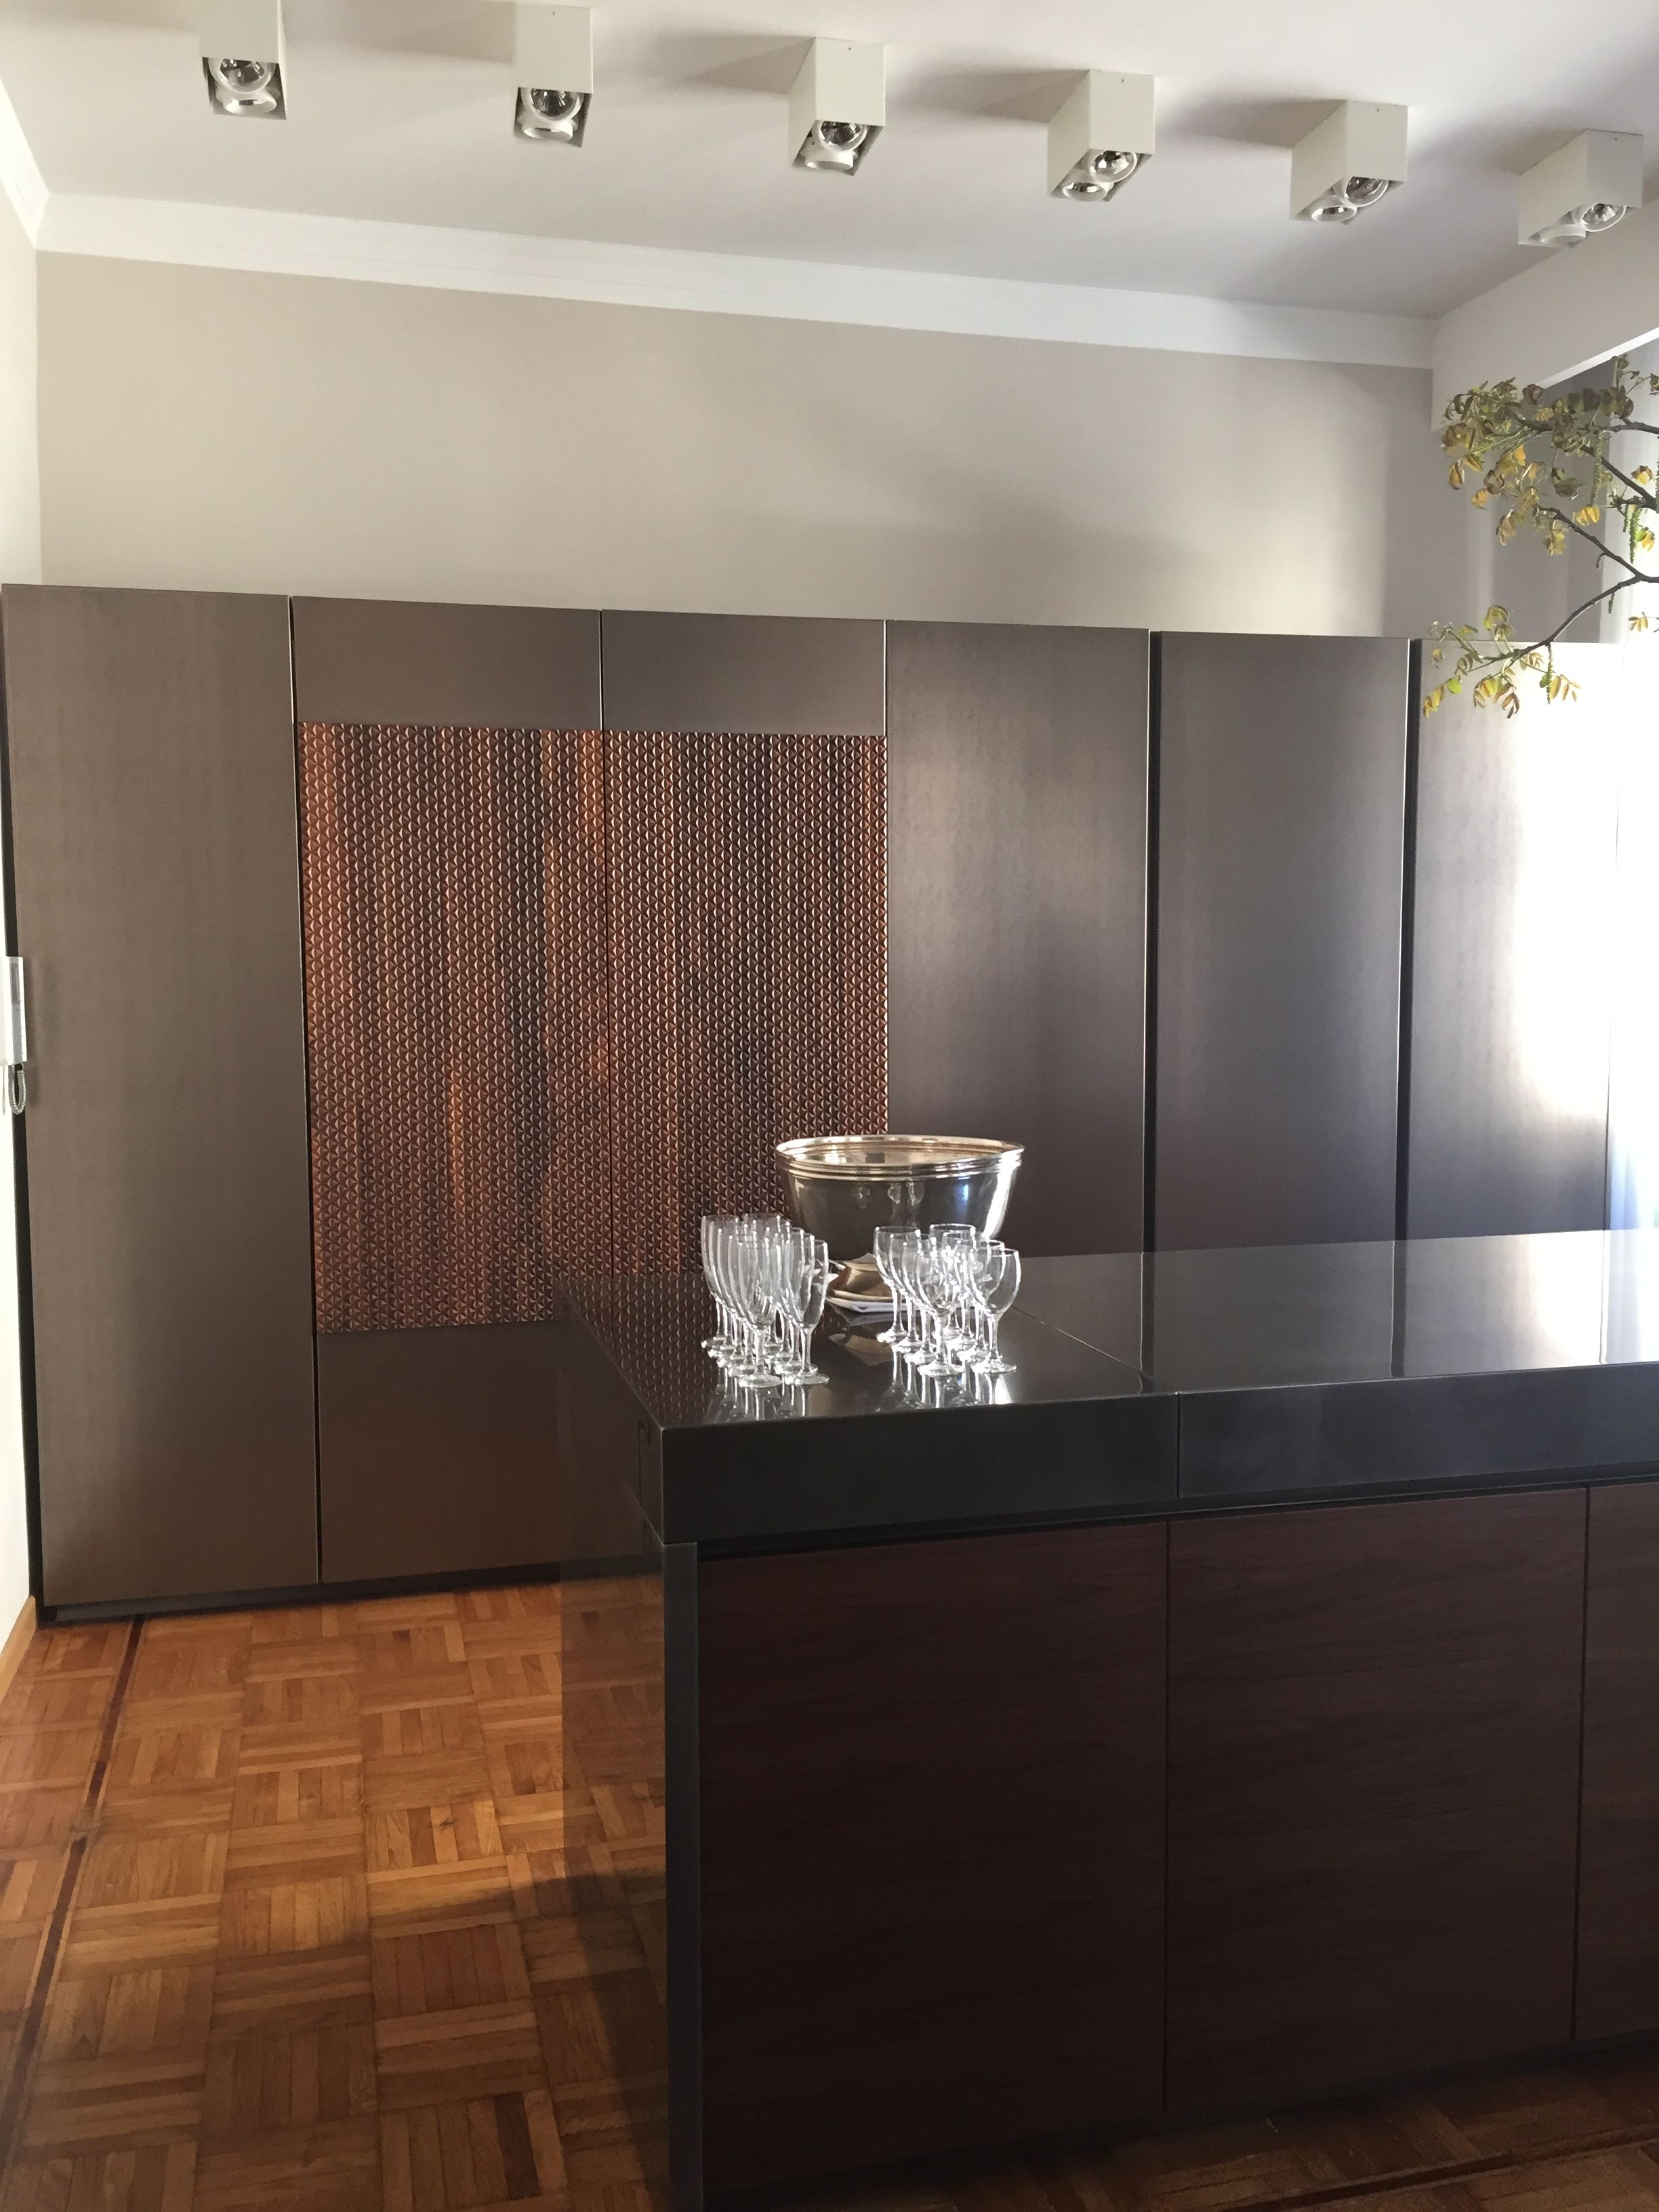 Giorgetti Atelier Showroom Bar/Kitchen set up with the walnut panels ...